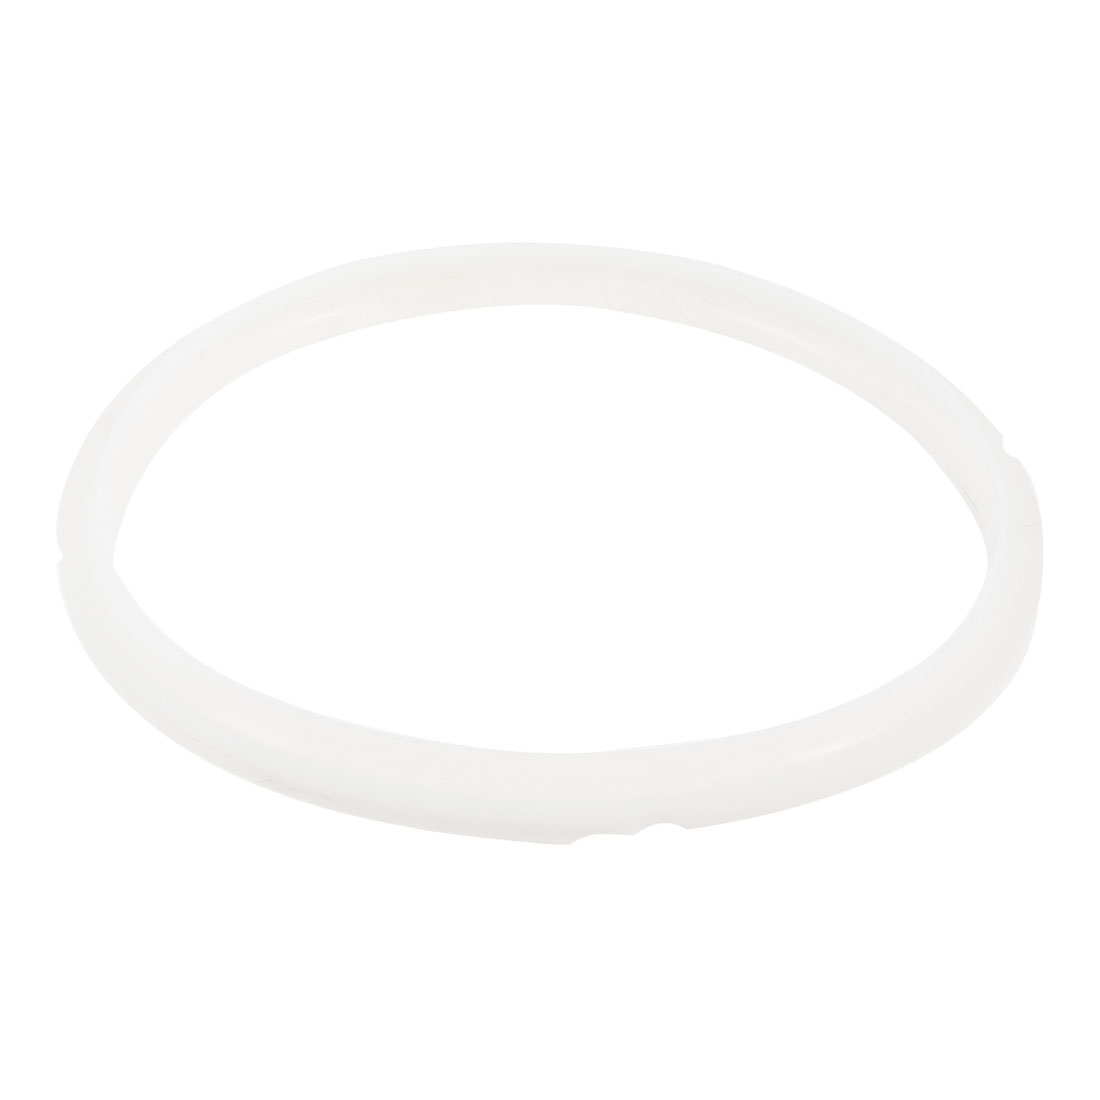 White 19.7cm Inner DiaGasket Sealing Ring for 3-4L Pressure Cookers